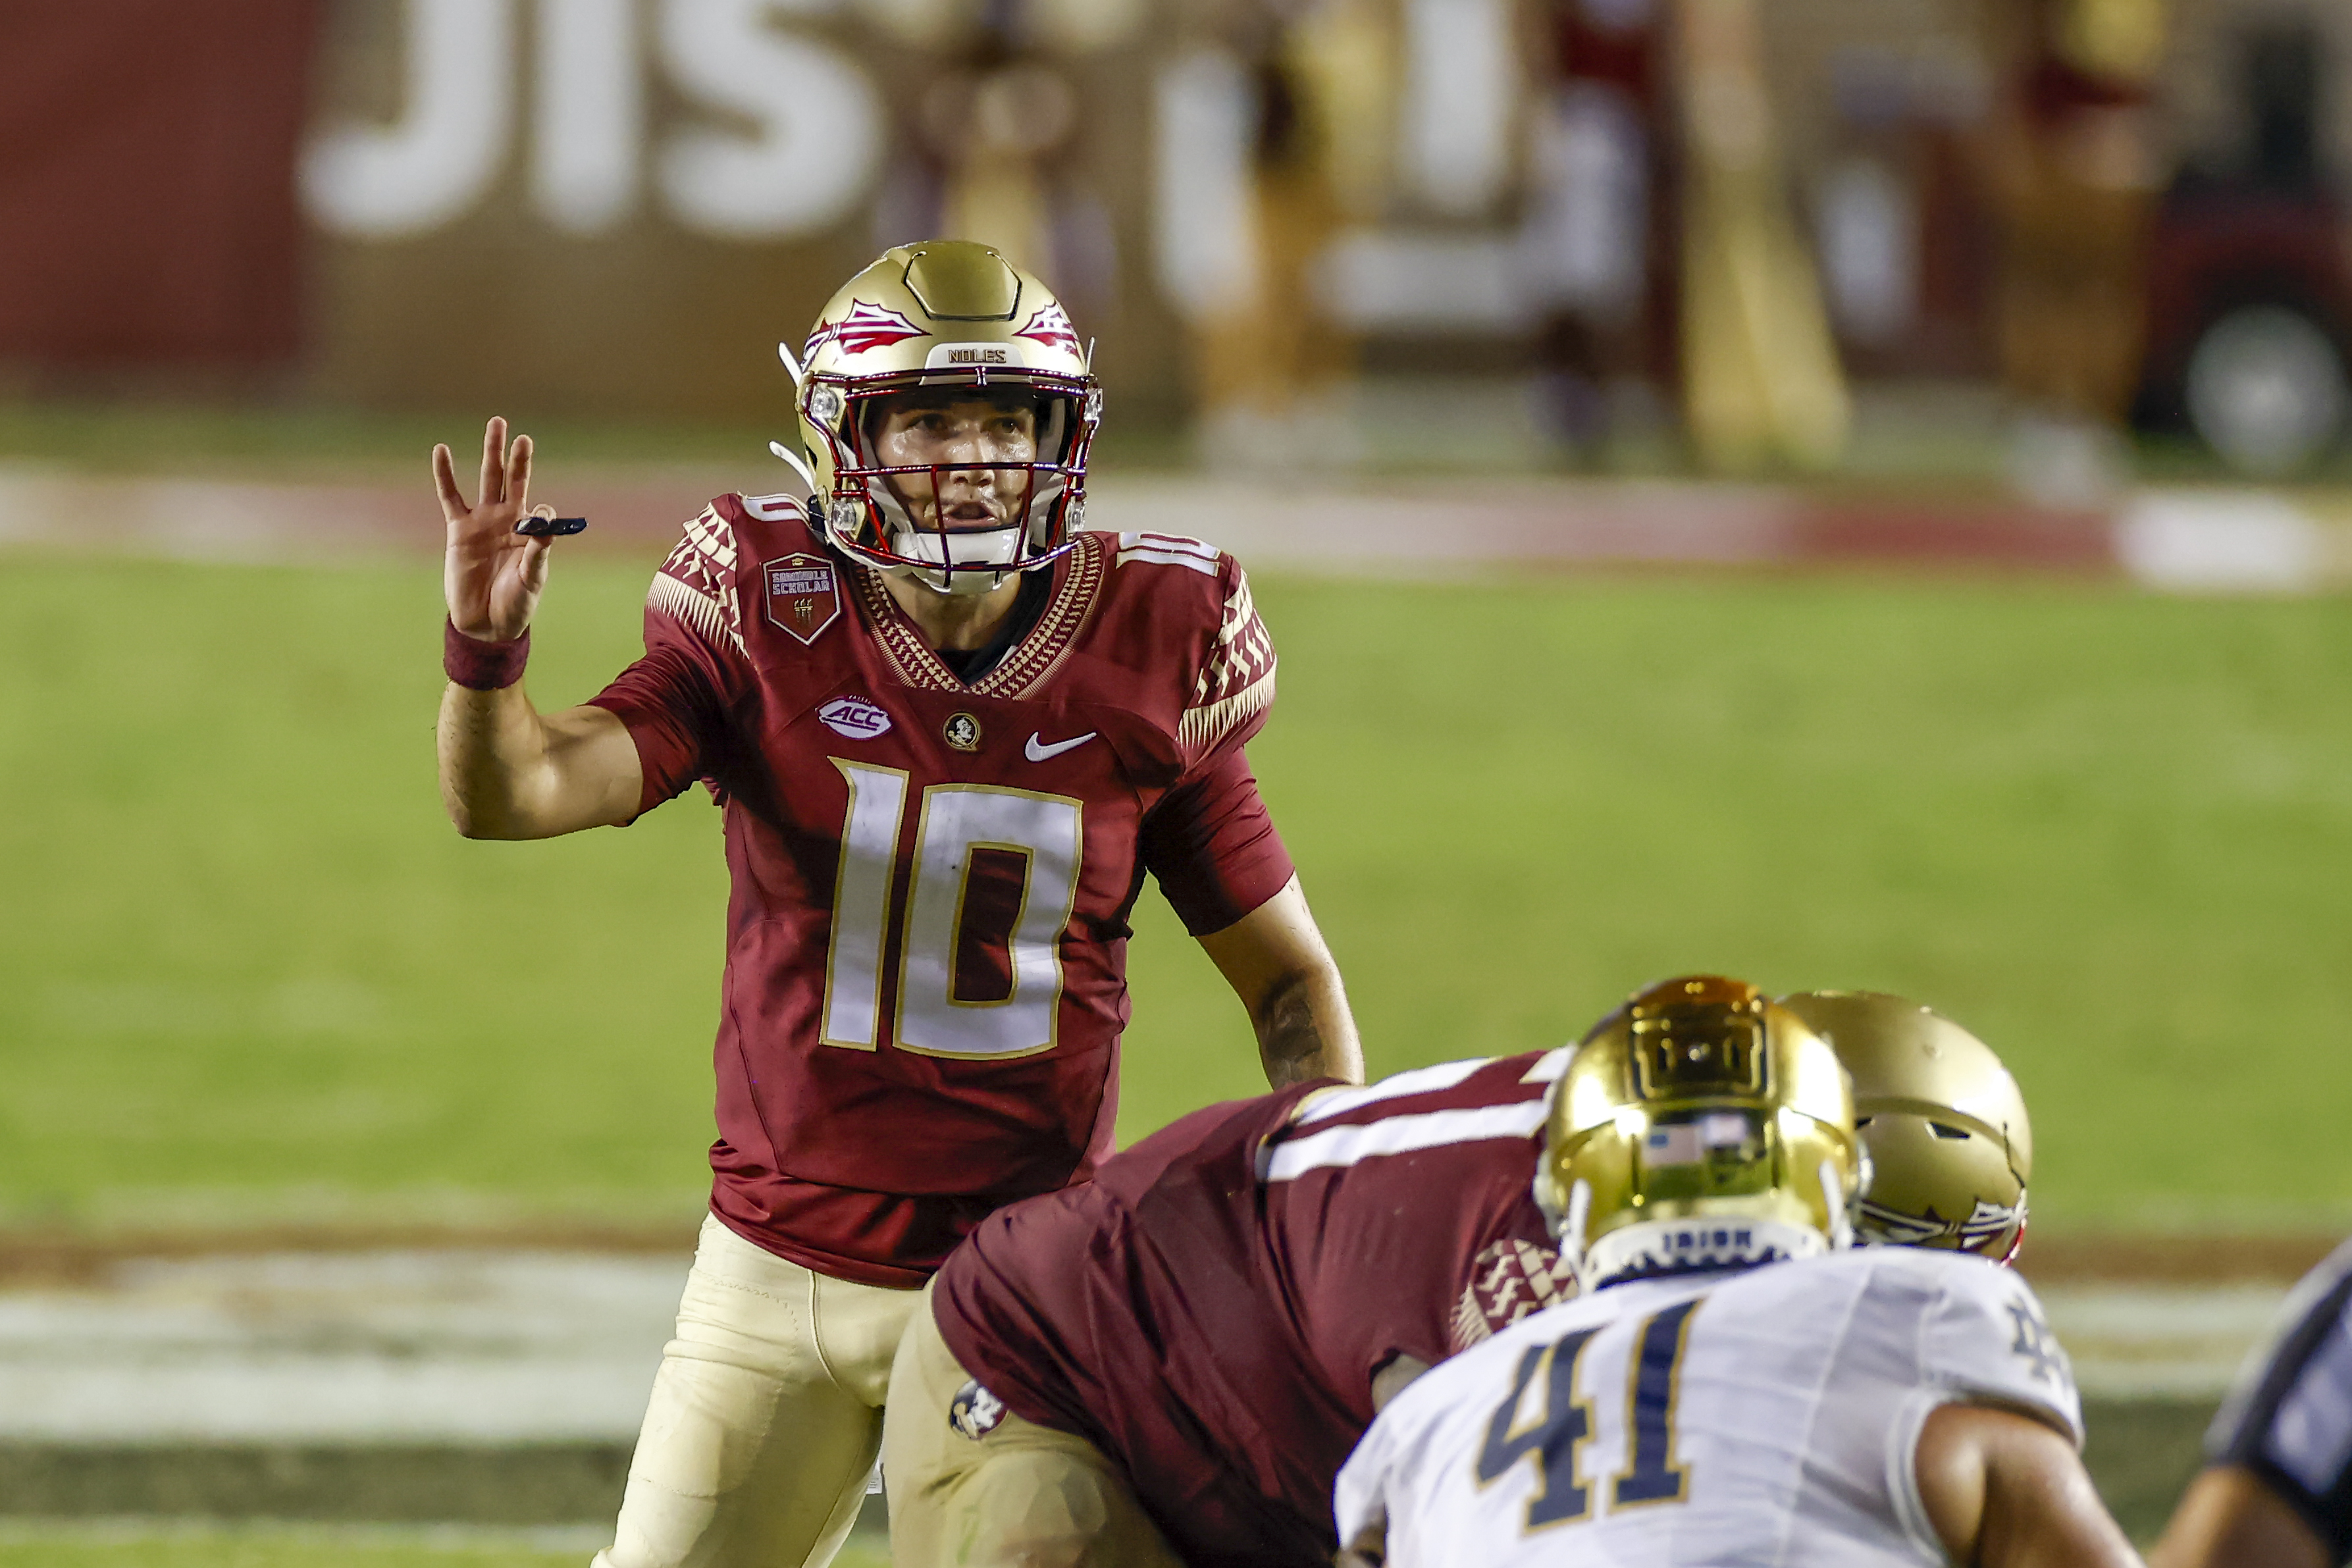 Florida State Seminoles quarterback McKenzie Milton during the game between the Notre Dame Fighting Irish and the Florida State Seminoles on September 5, 2021 at Bobby Bowden Field at Doak Campbell Stadium in Tallahassee, Fl.